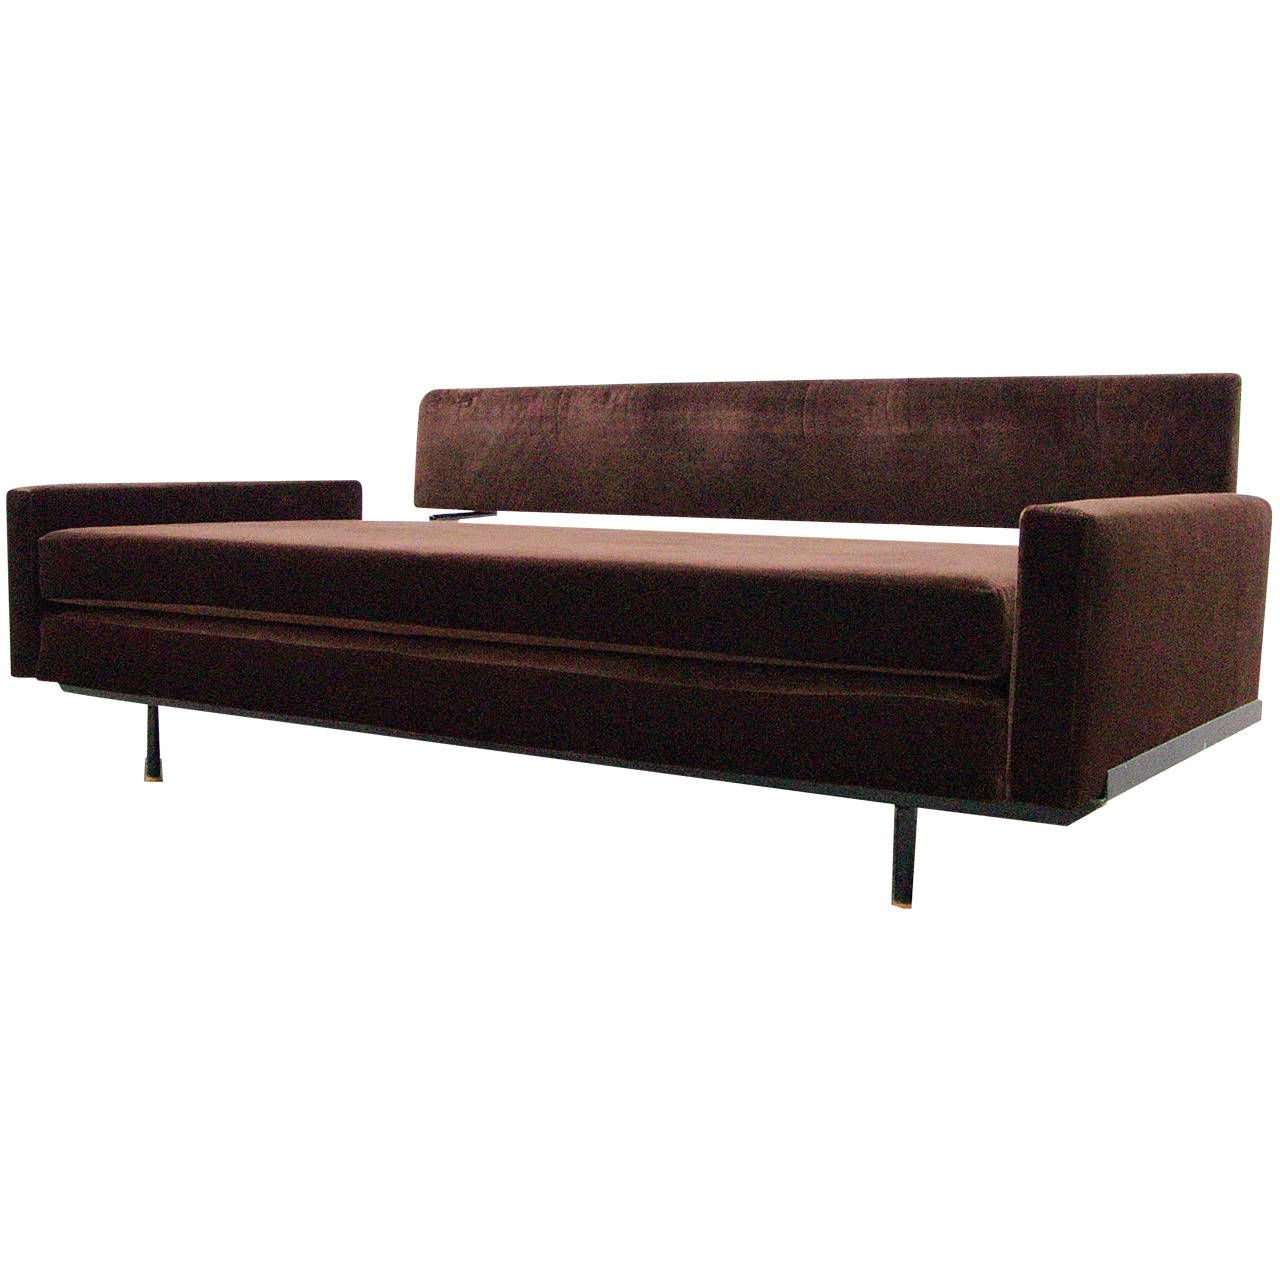 2019 Sofa Daybedflorence Knoll International, Mid Century Regarding Florence Mid Century Modern Right Sectional Sofas (View 12 of 20)